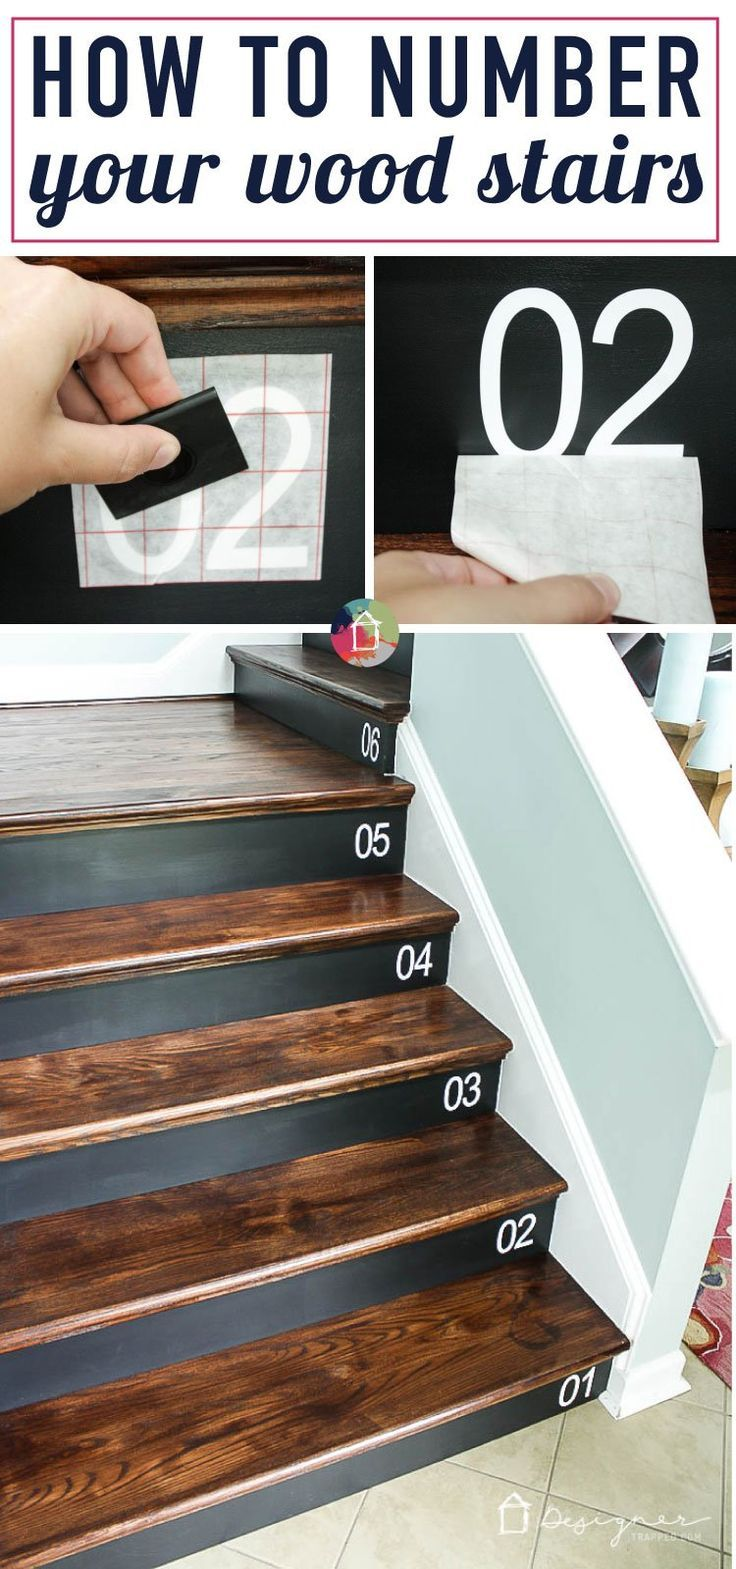 Virtual craft club diy vinyl wood slice sugar bee - Learn How To Number Your Wood Stairs The Easy Way